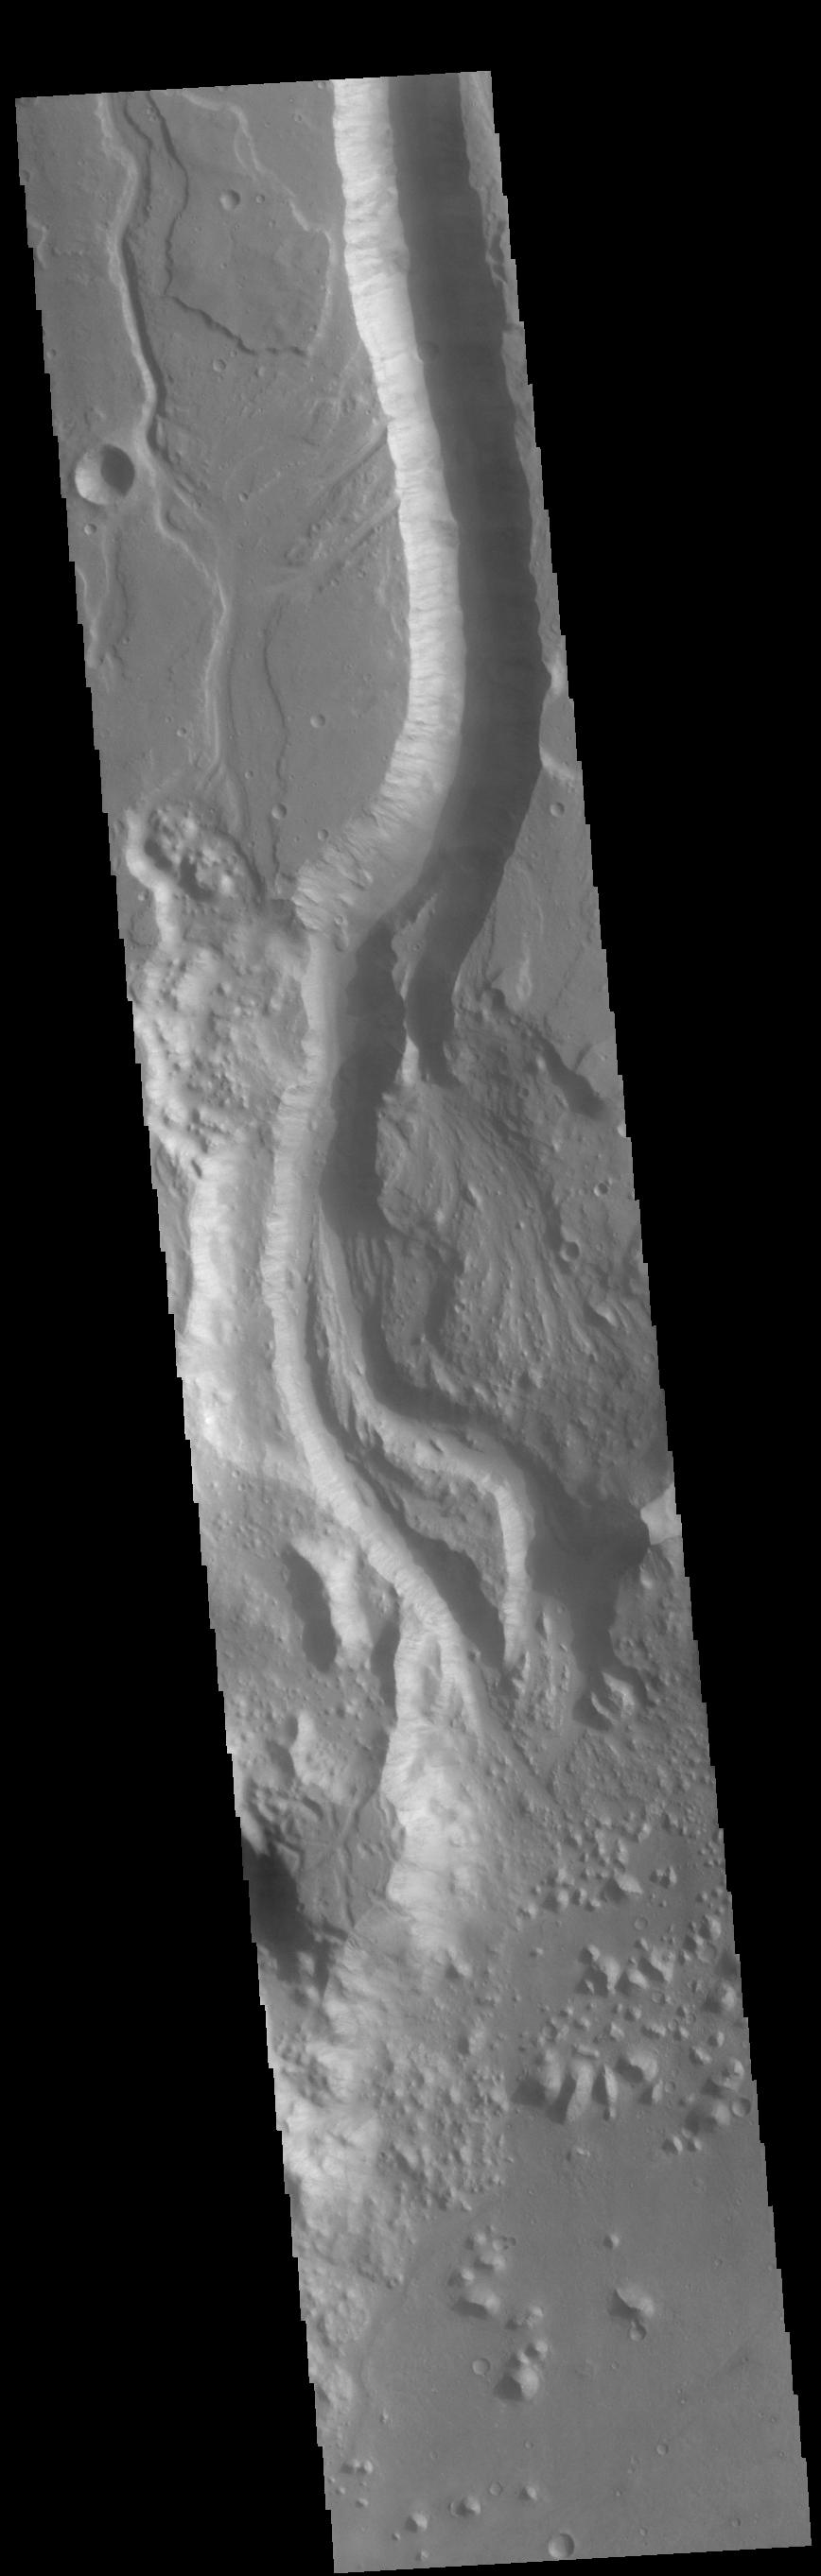 This image from NASAs Mars Odyssey shows a section of Shalbatana Vallis. Shalbatana Vallis is located in Xanthe Terra and is one of many channels that empty into Chryse Planitia.